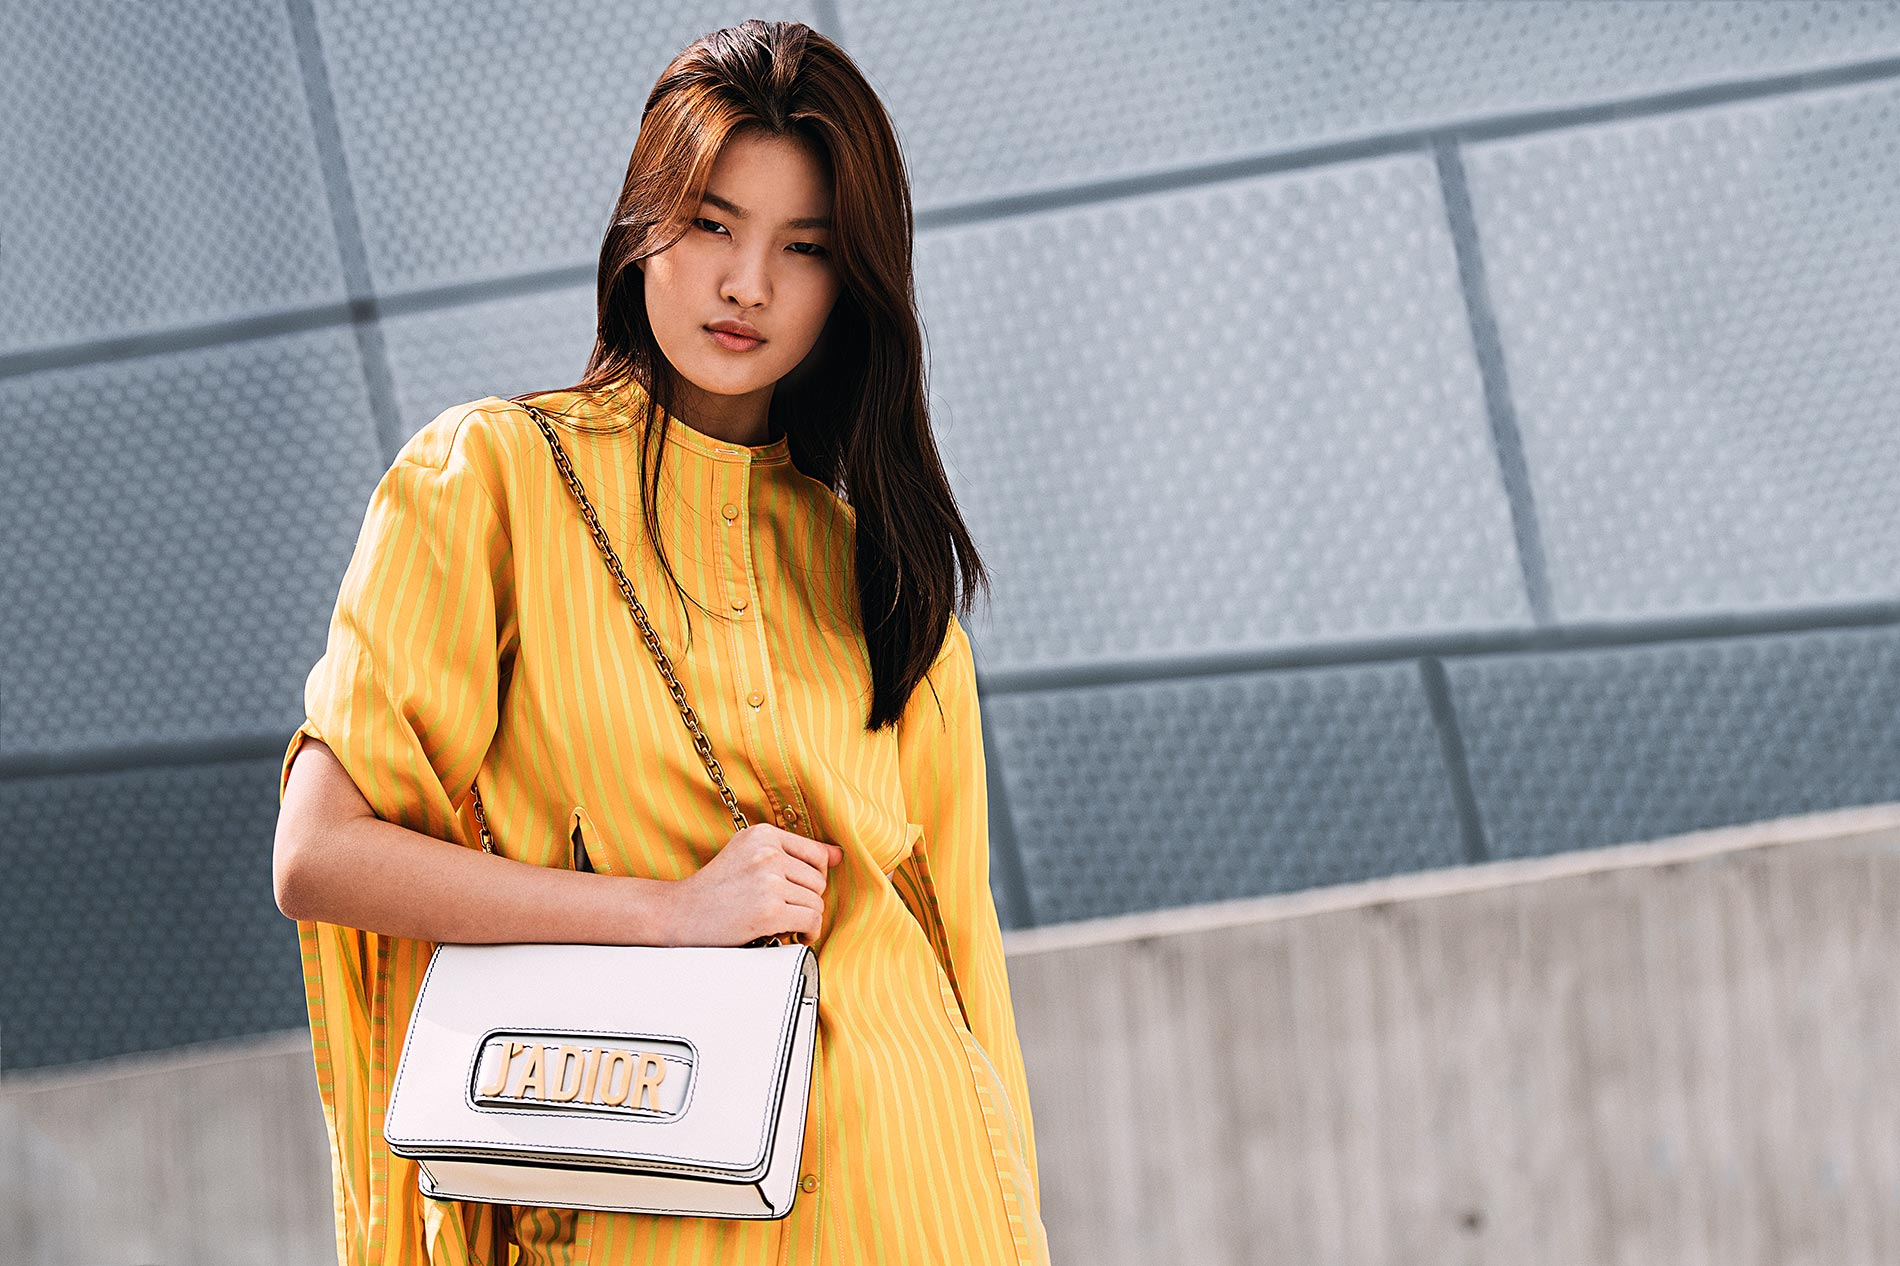 Yujin Seo at Seoul Fashion Week